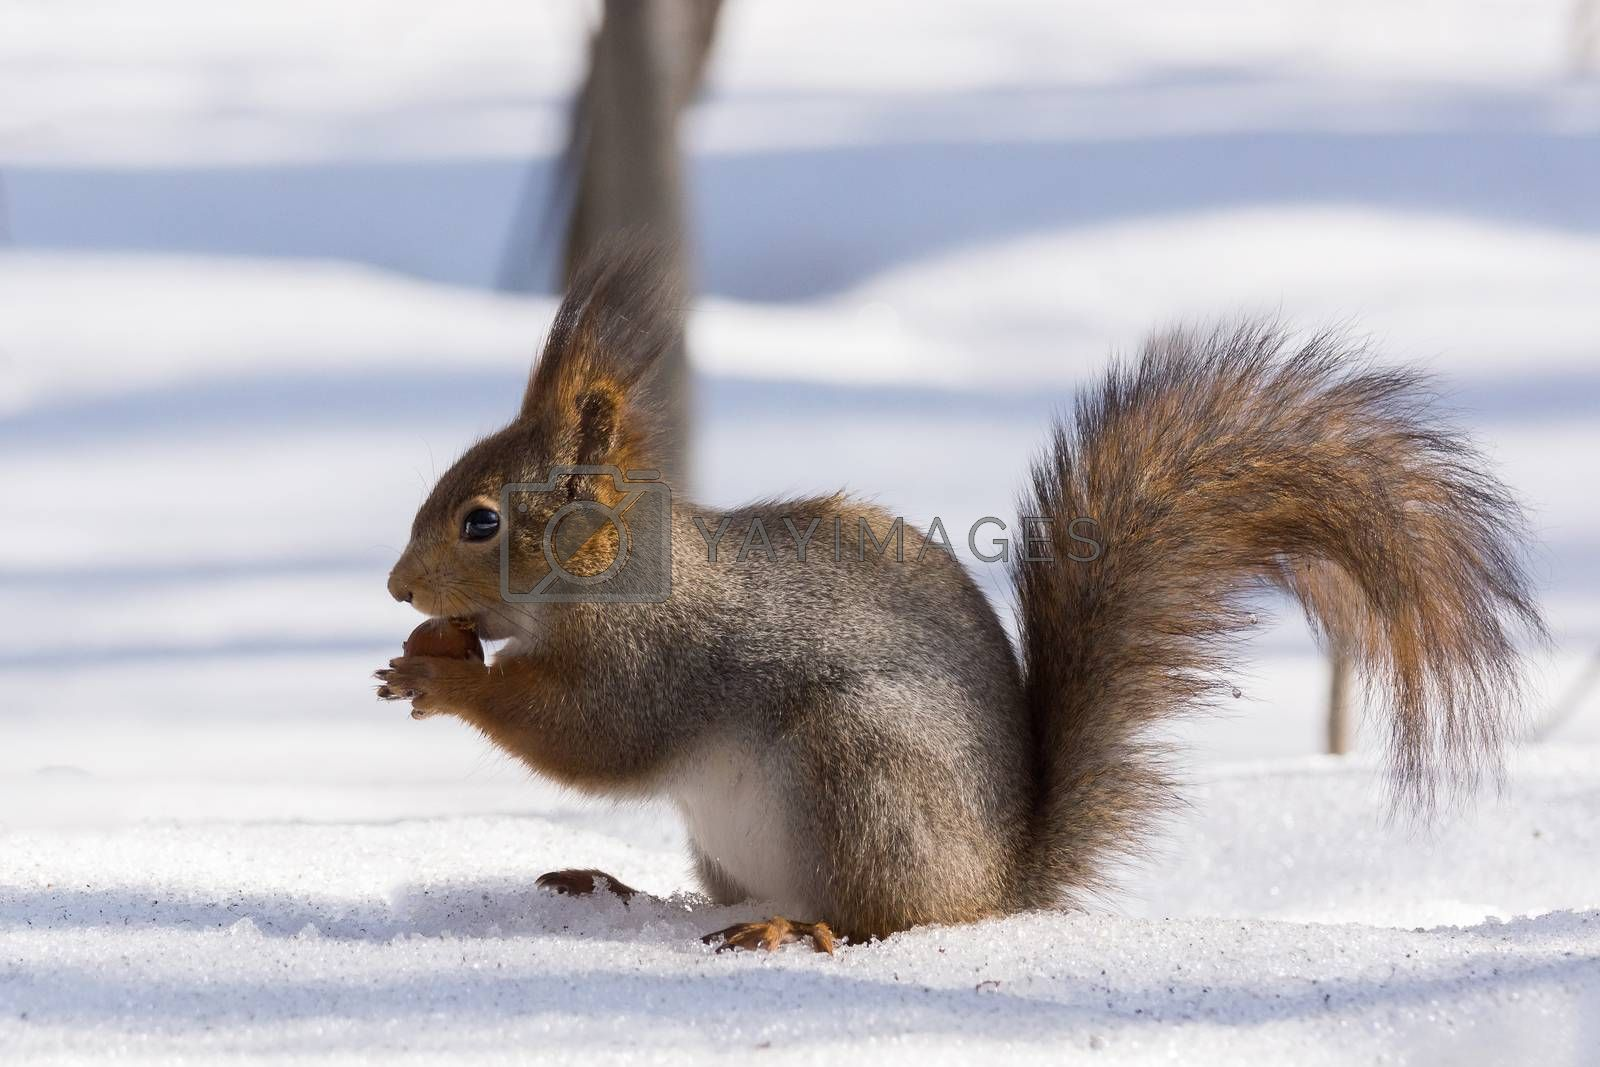 Royalty free image of squirrel on a tree by AlexBush